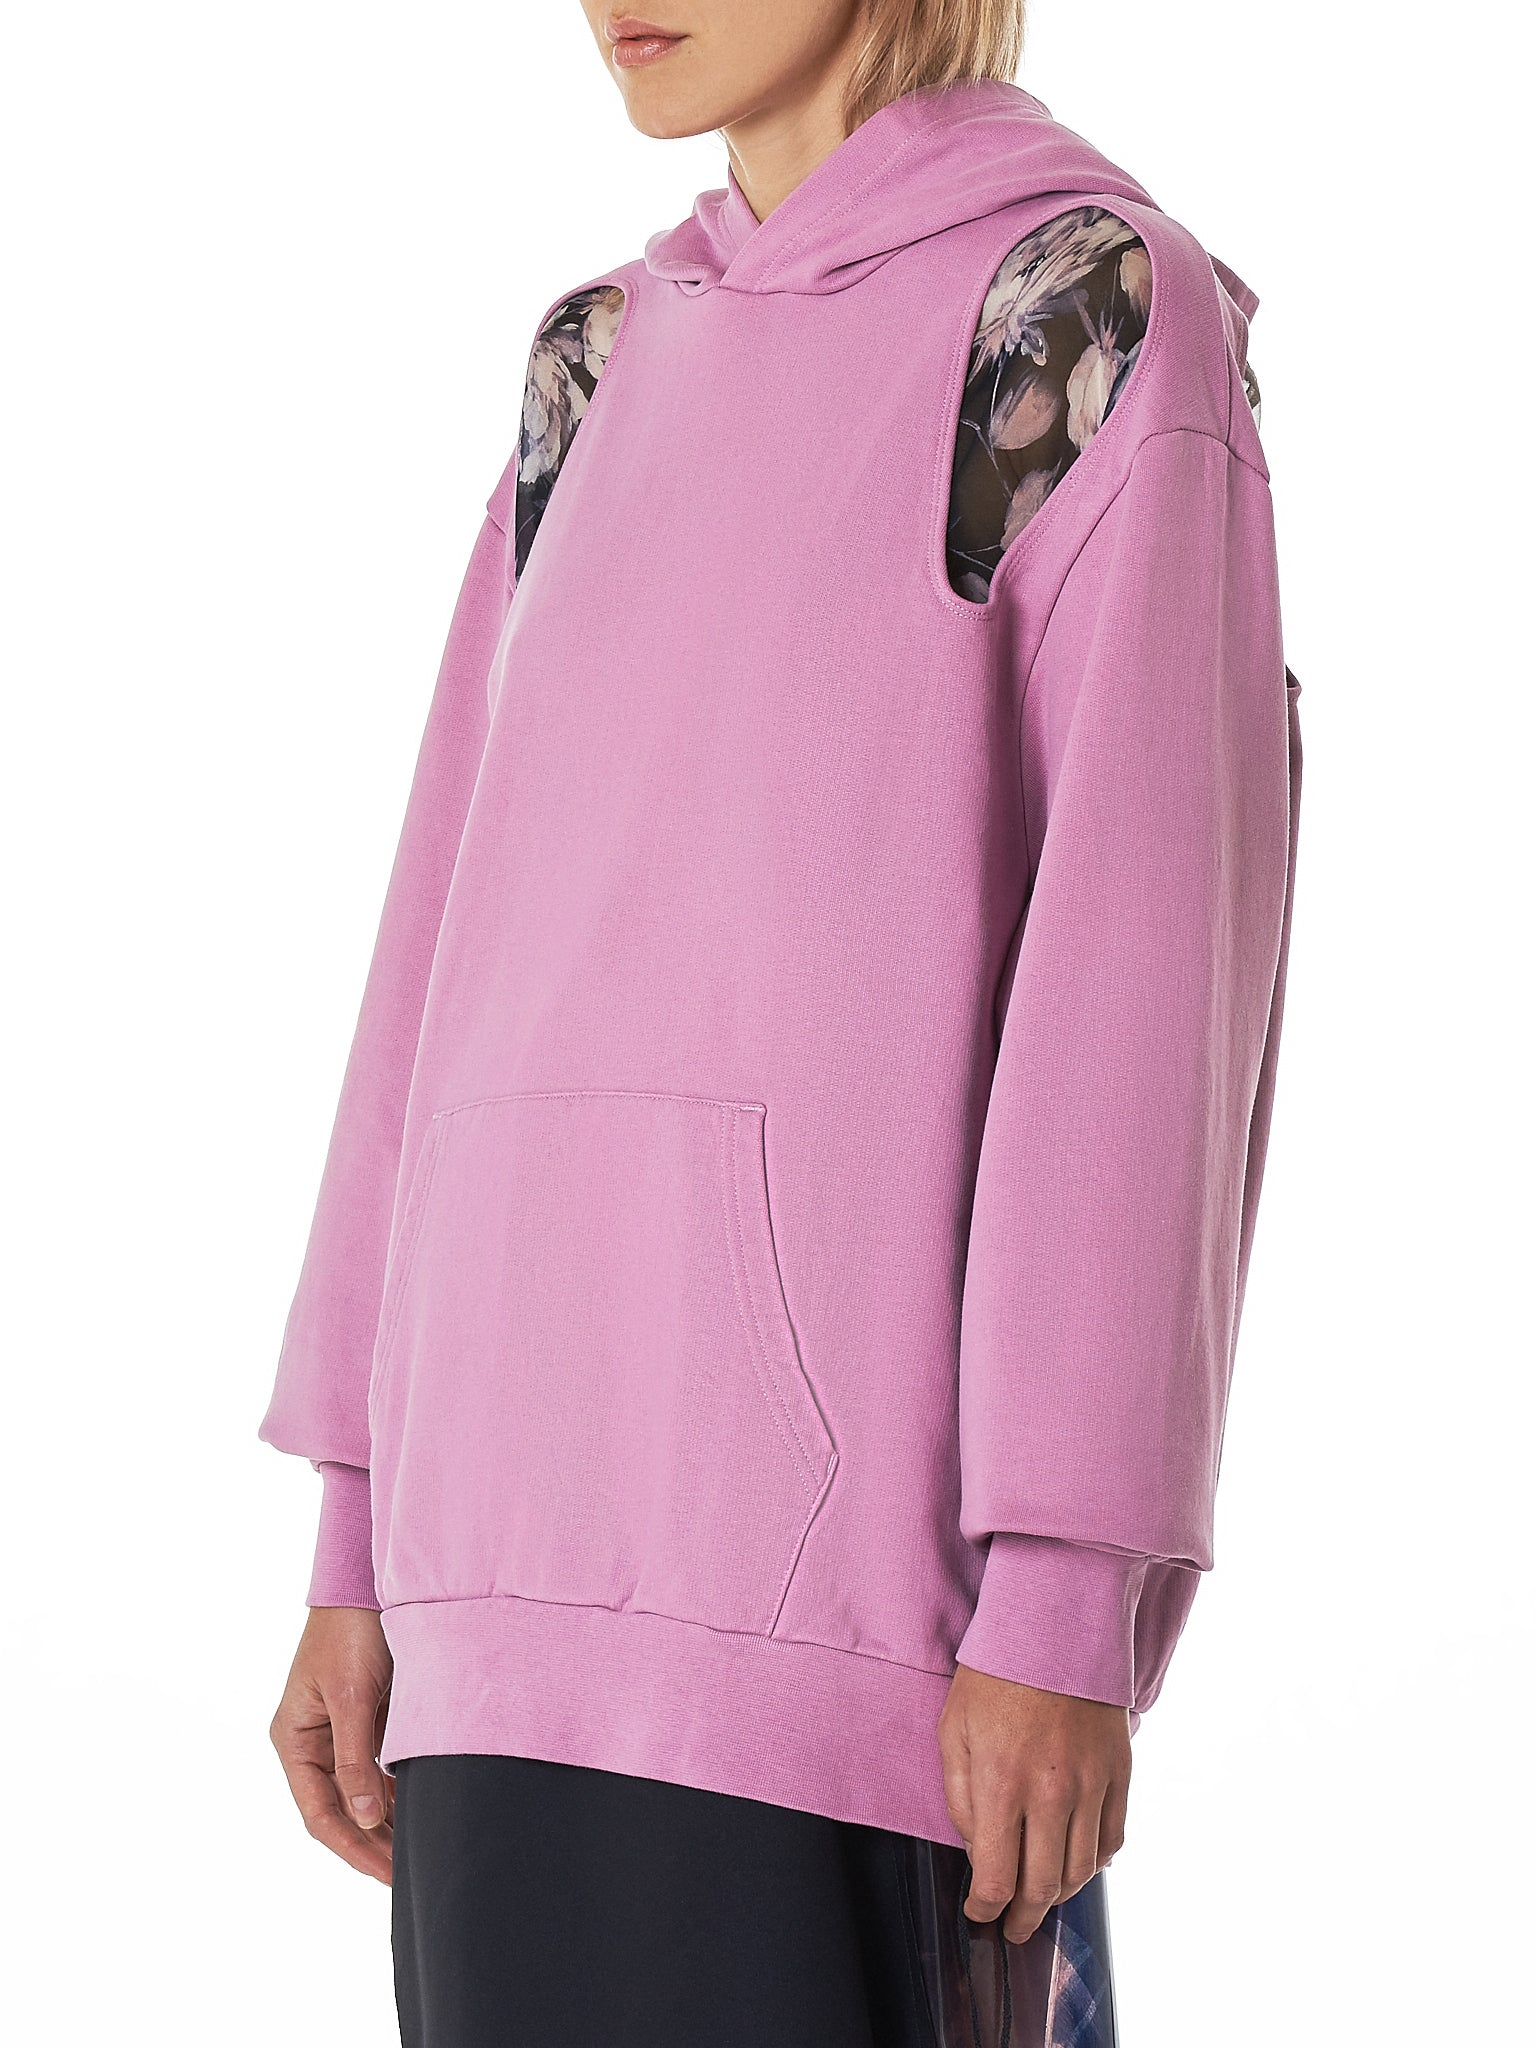 Cut-Out Hooded Pullover (H1158-DUST-PINK)